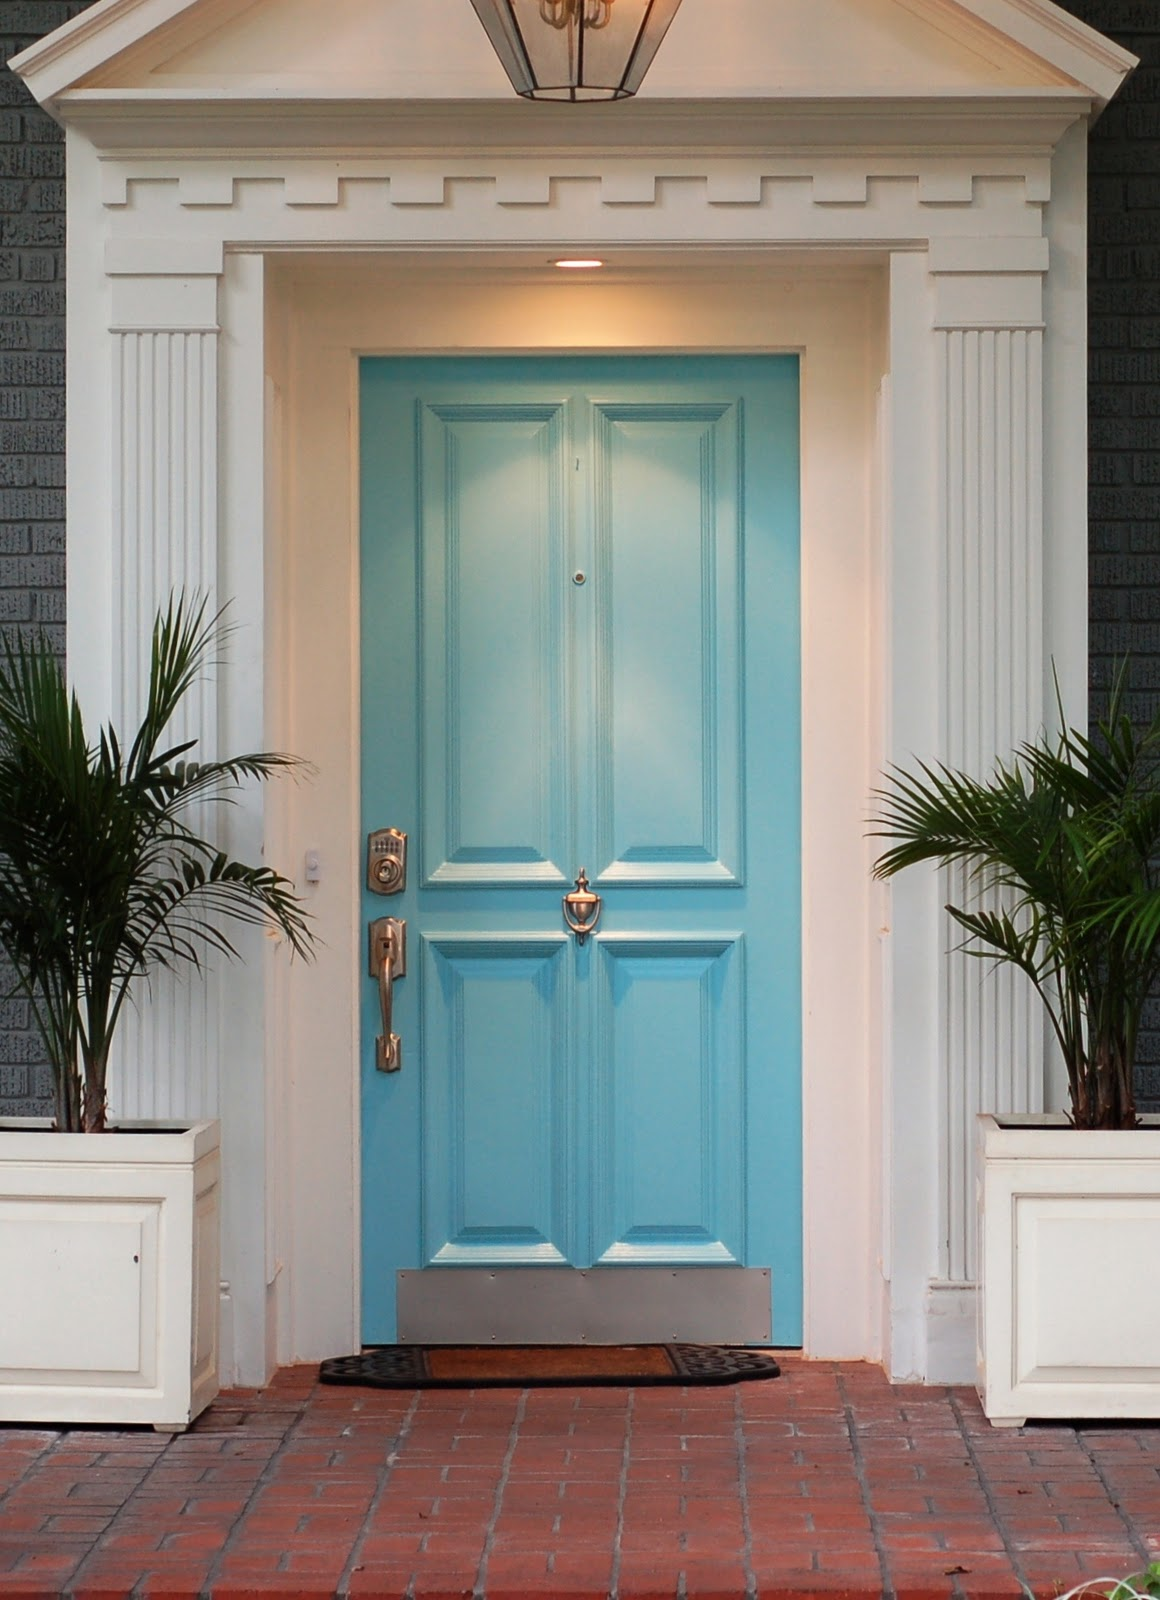 North dallas real estate front door colors to help sell for Front entrance doors